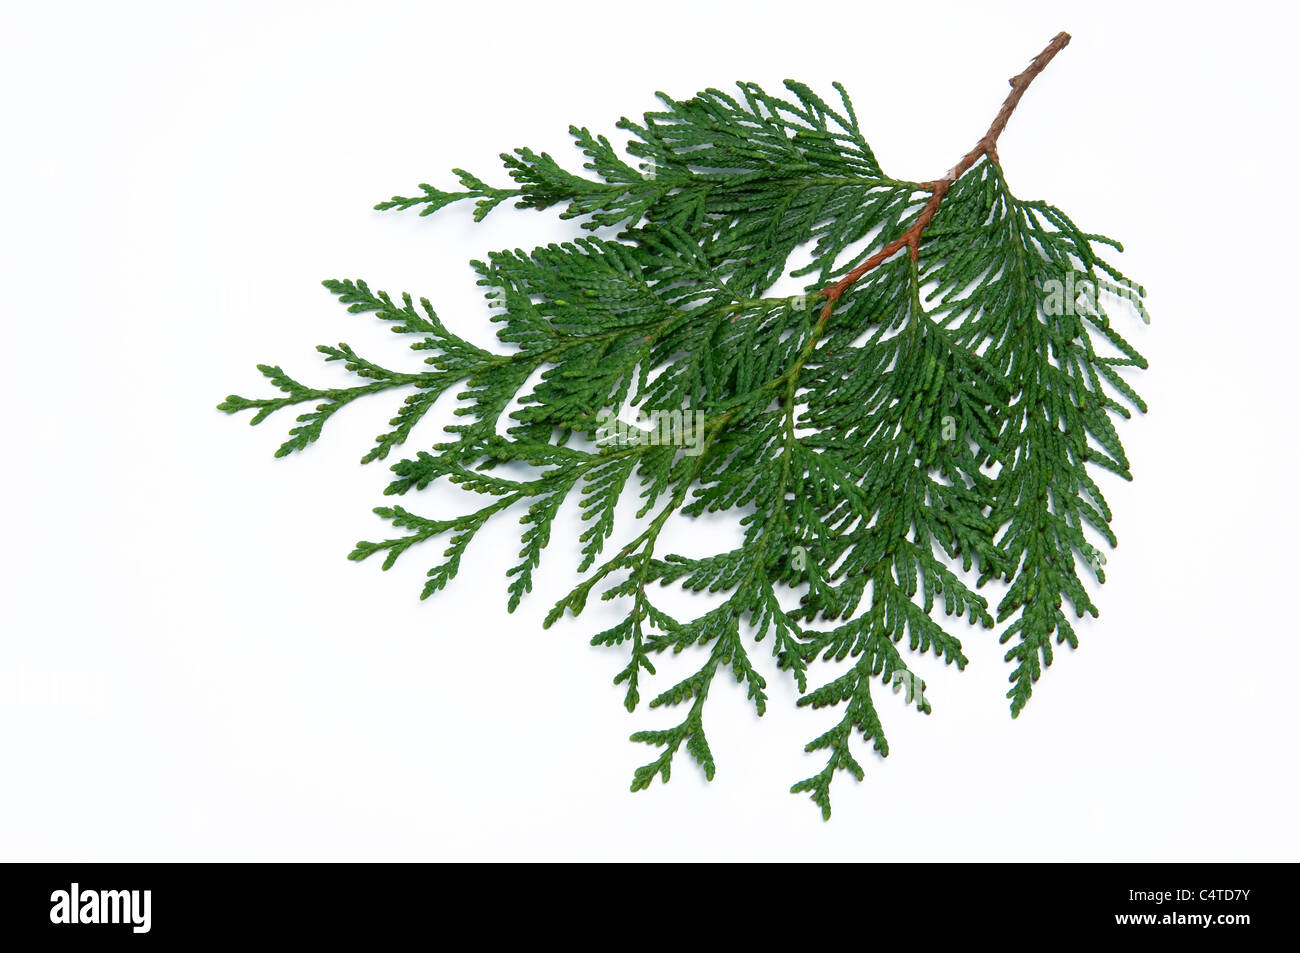 Western Red Cedar (Thuja plicata Excelsa), twig. Studio picture against a white background. - Stock Image